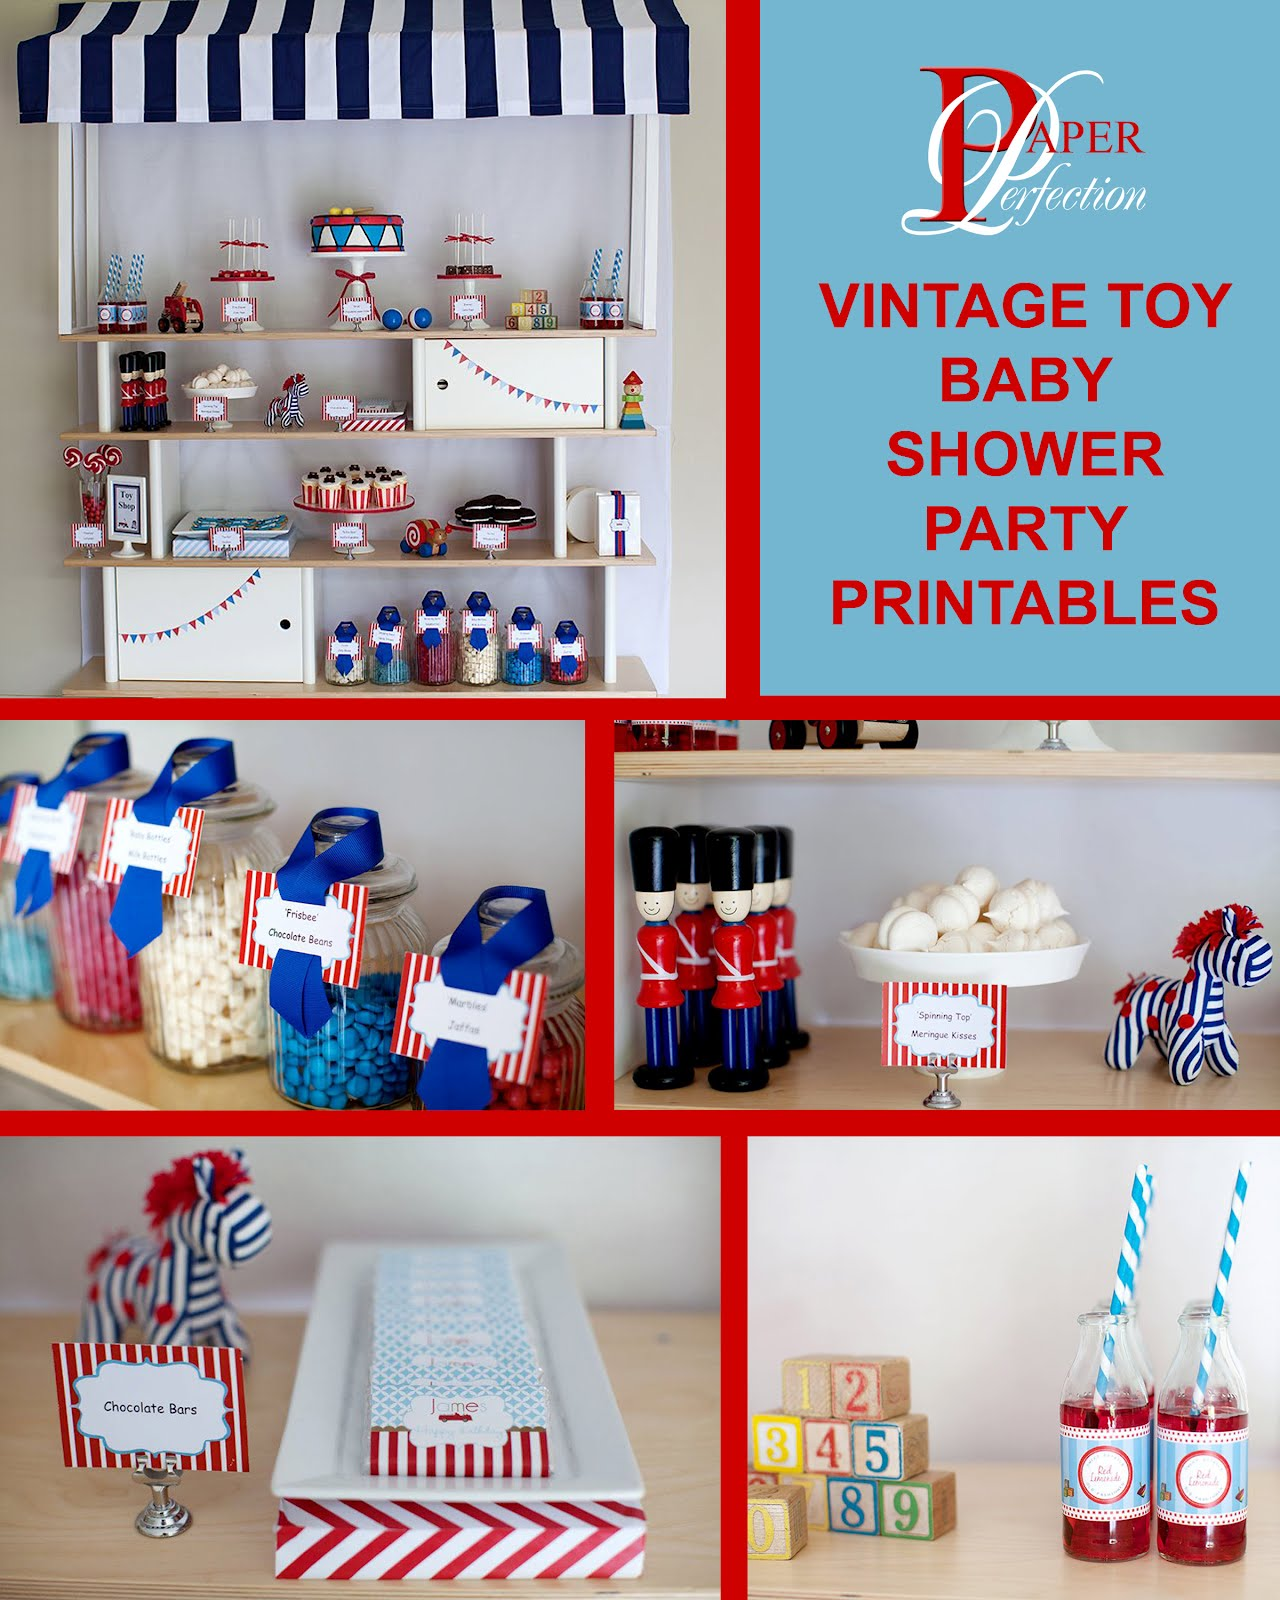 Paper Perfection Vintage Toy Party Printables For A Baby Shower Or